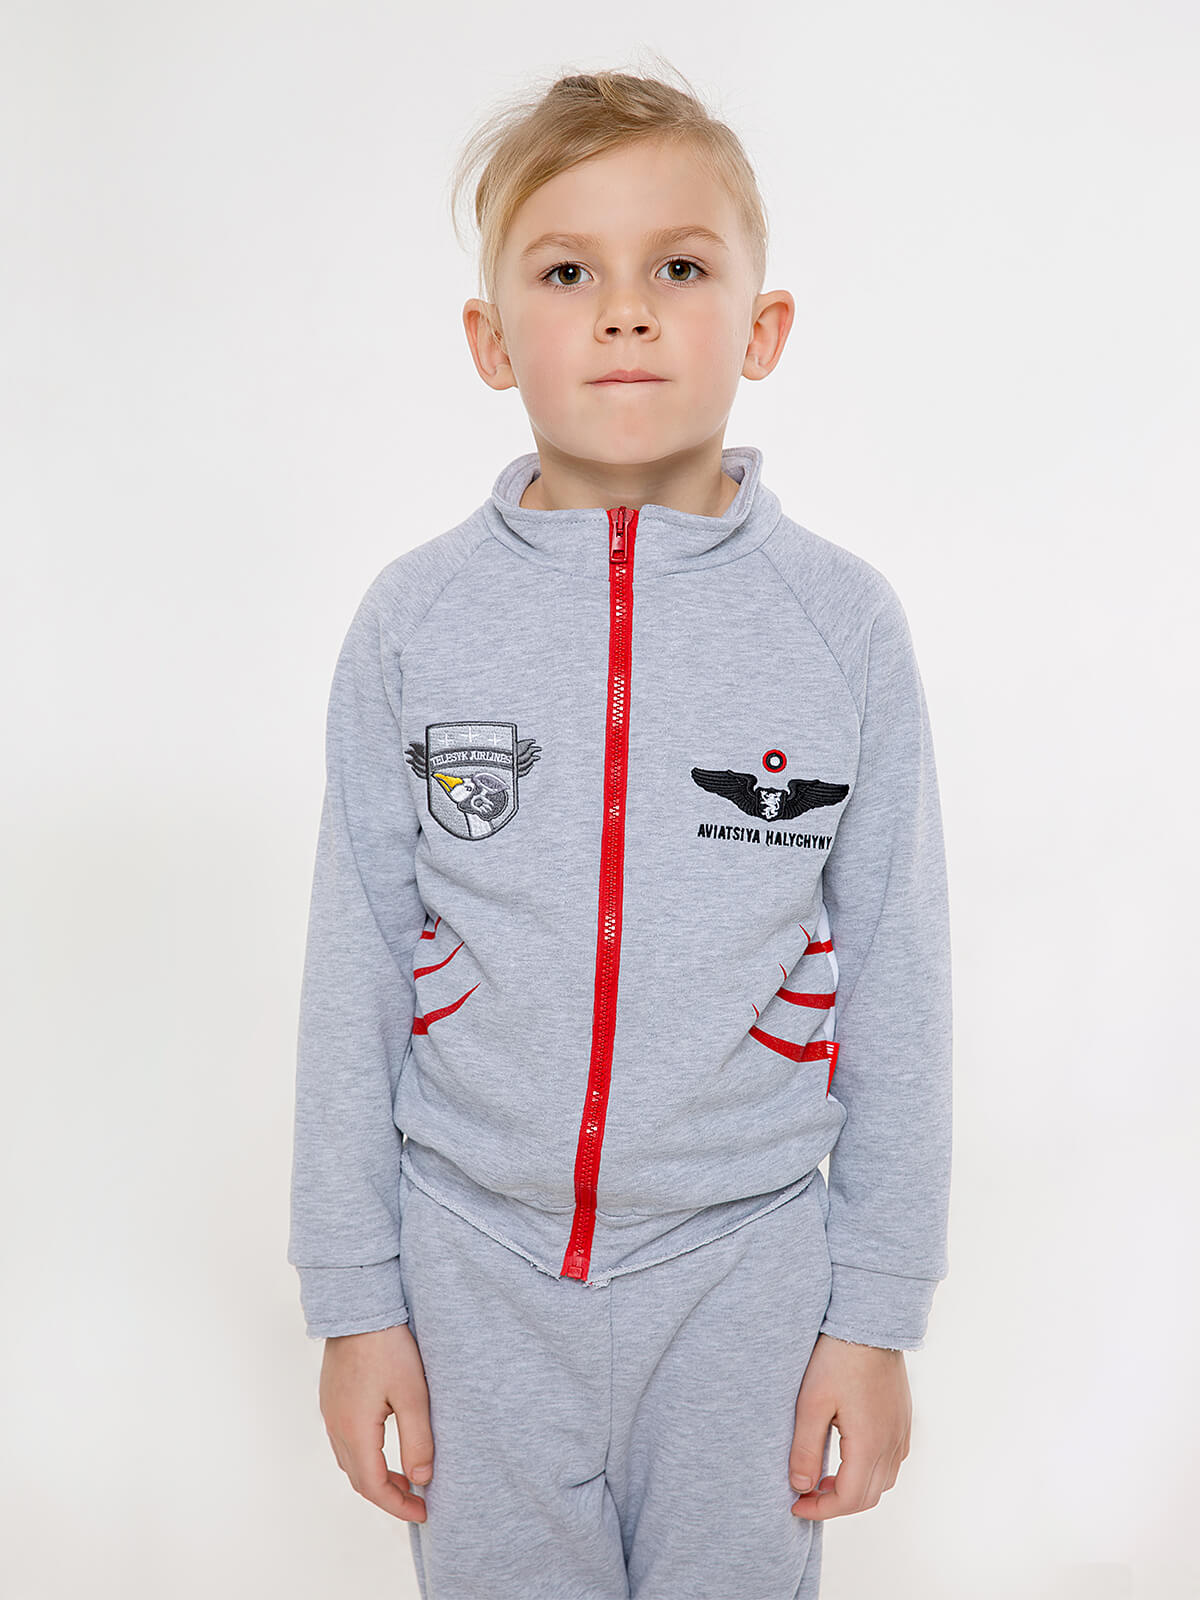 Kids Sport Suit Shark. Color gray. 3.